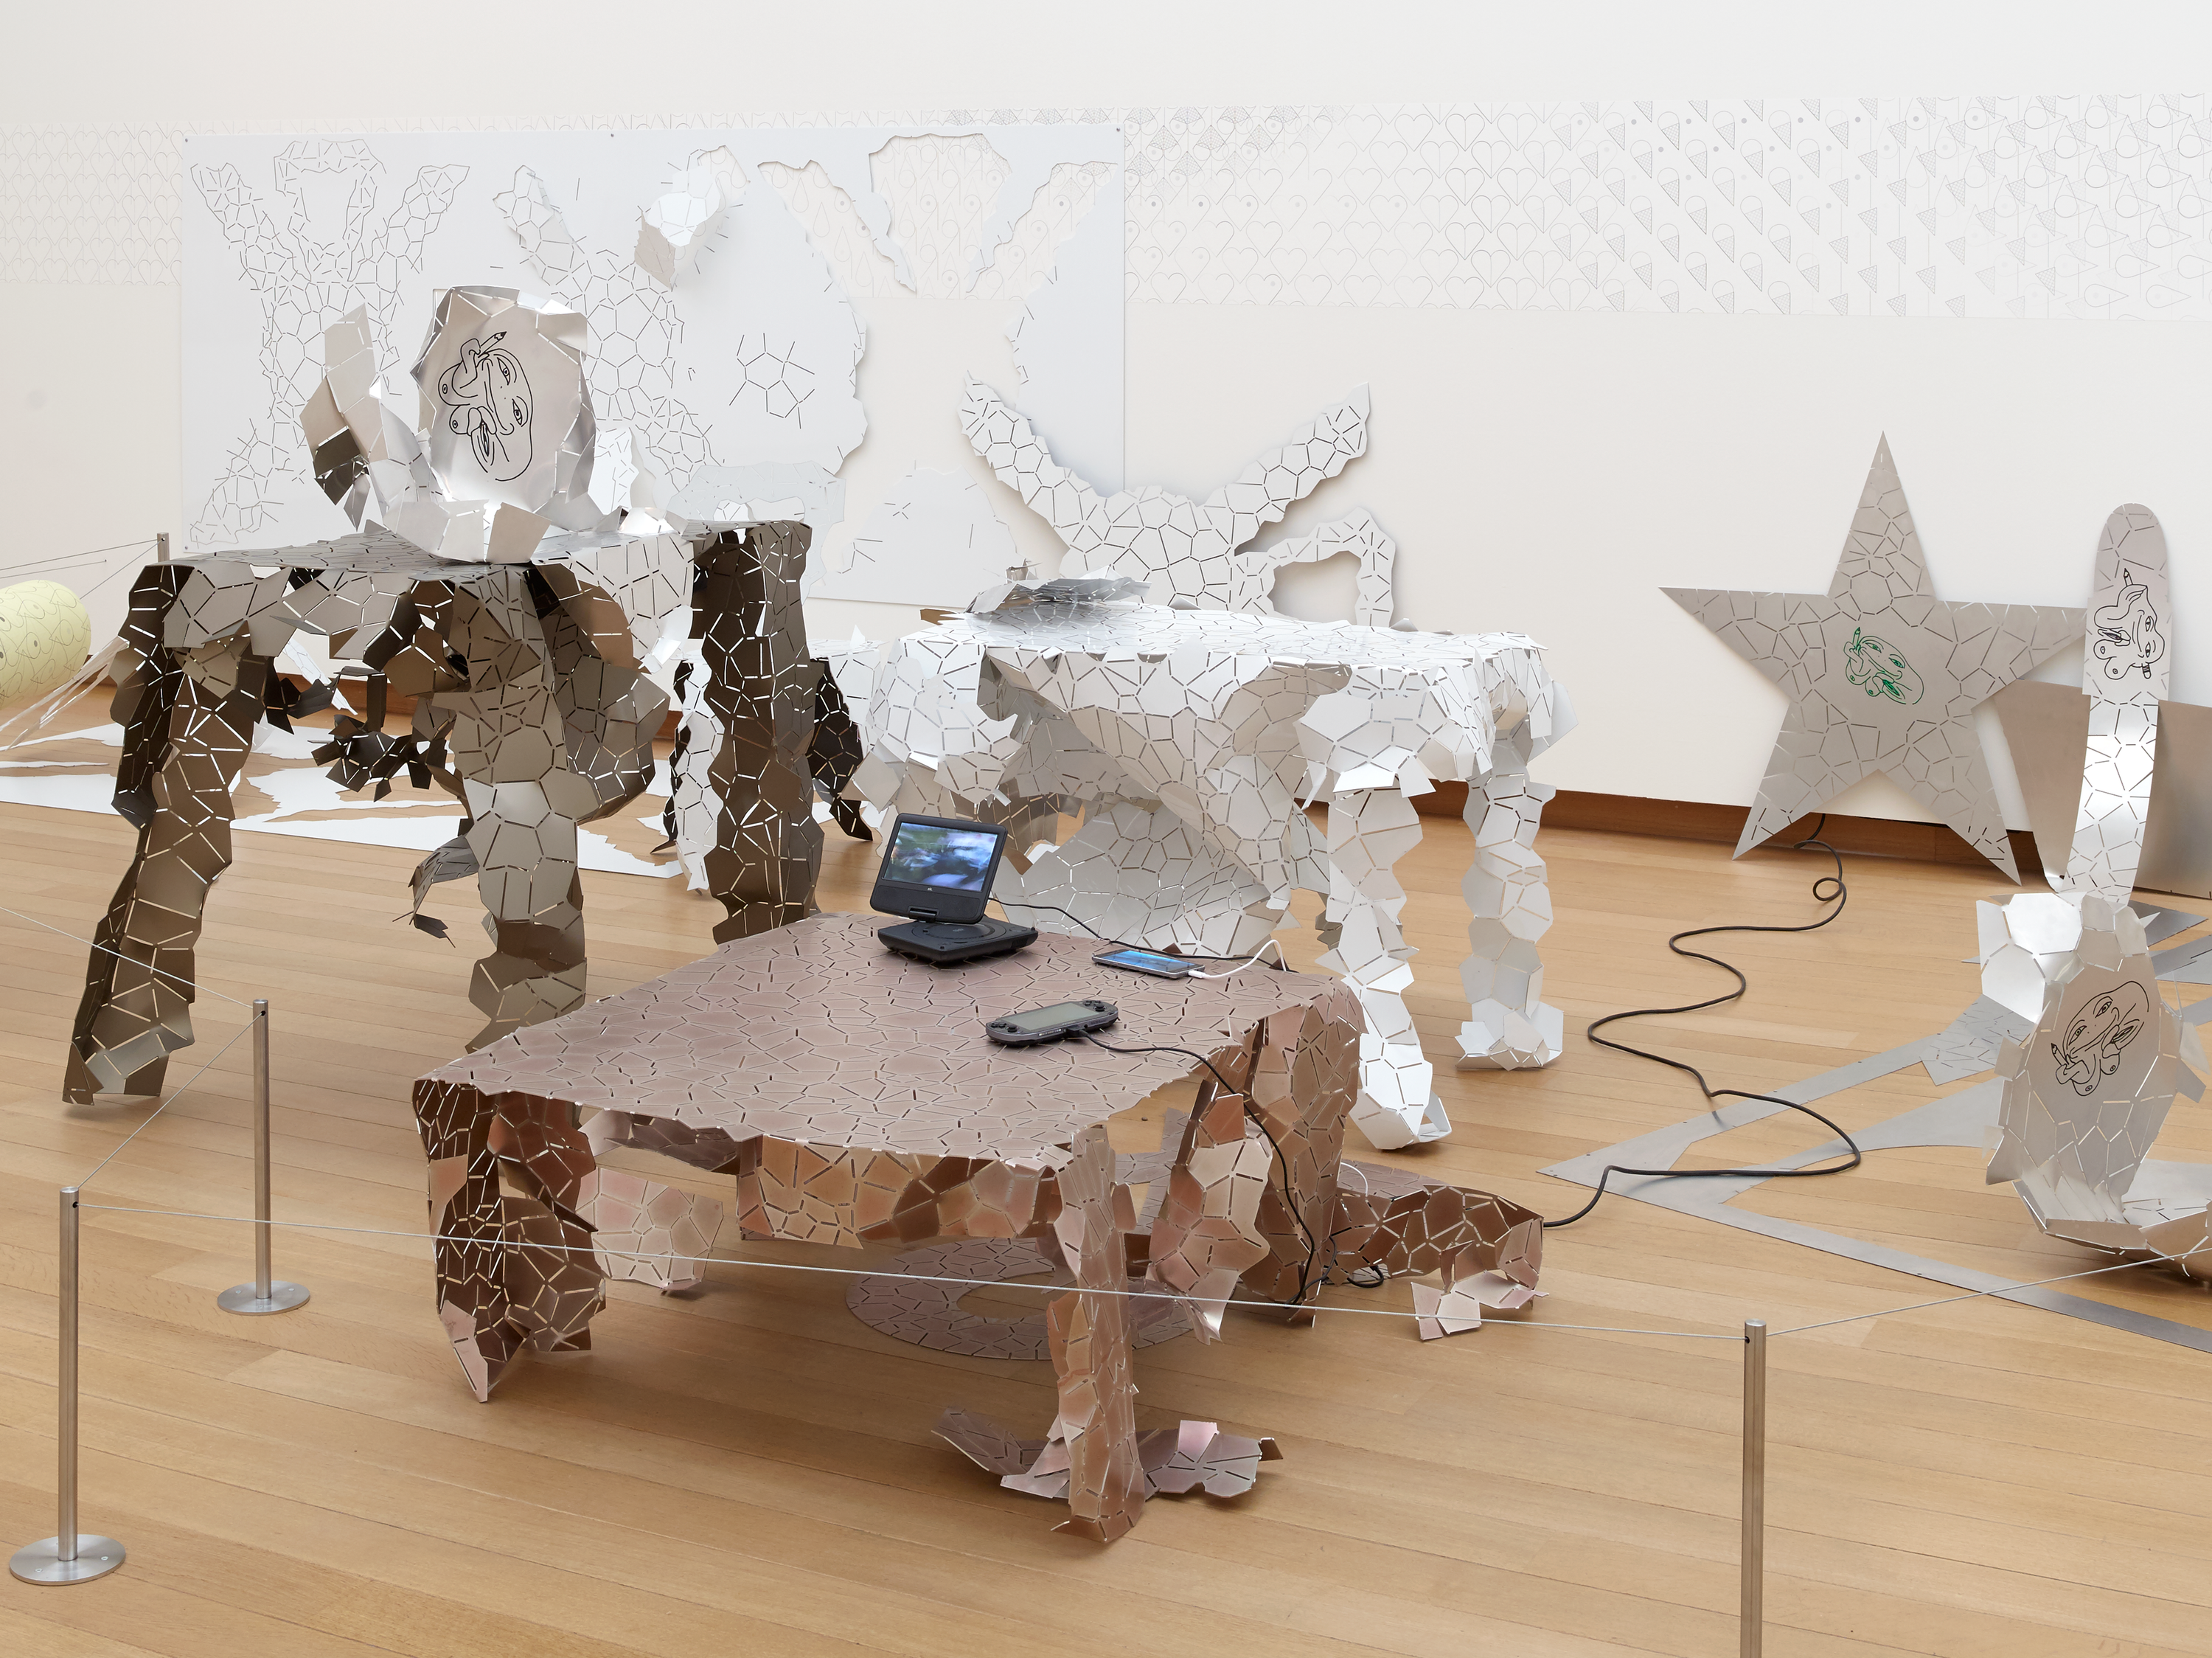 Installation view, Seth Price: Social Synthetic, Stedelijk Museum, Amsterdam, 2017. Courtesy of the artist and Petzel, New York.